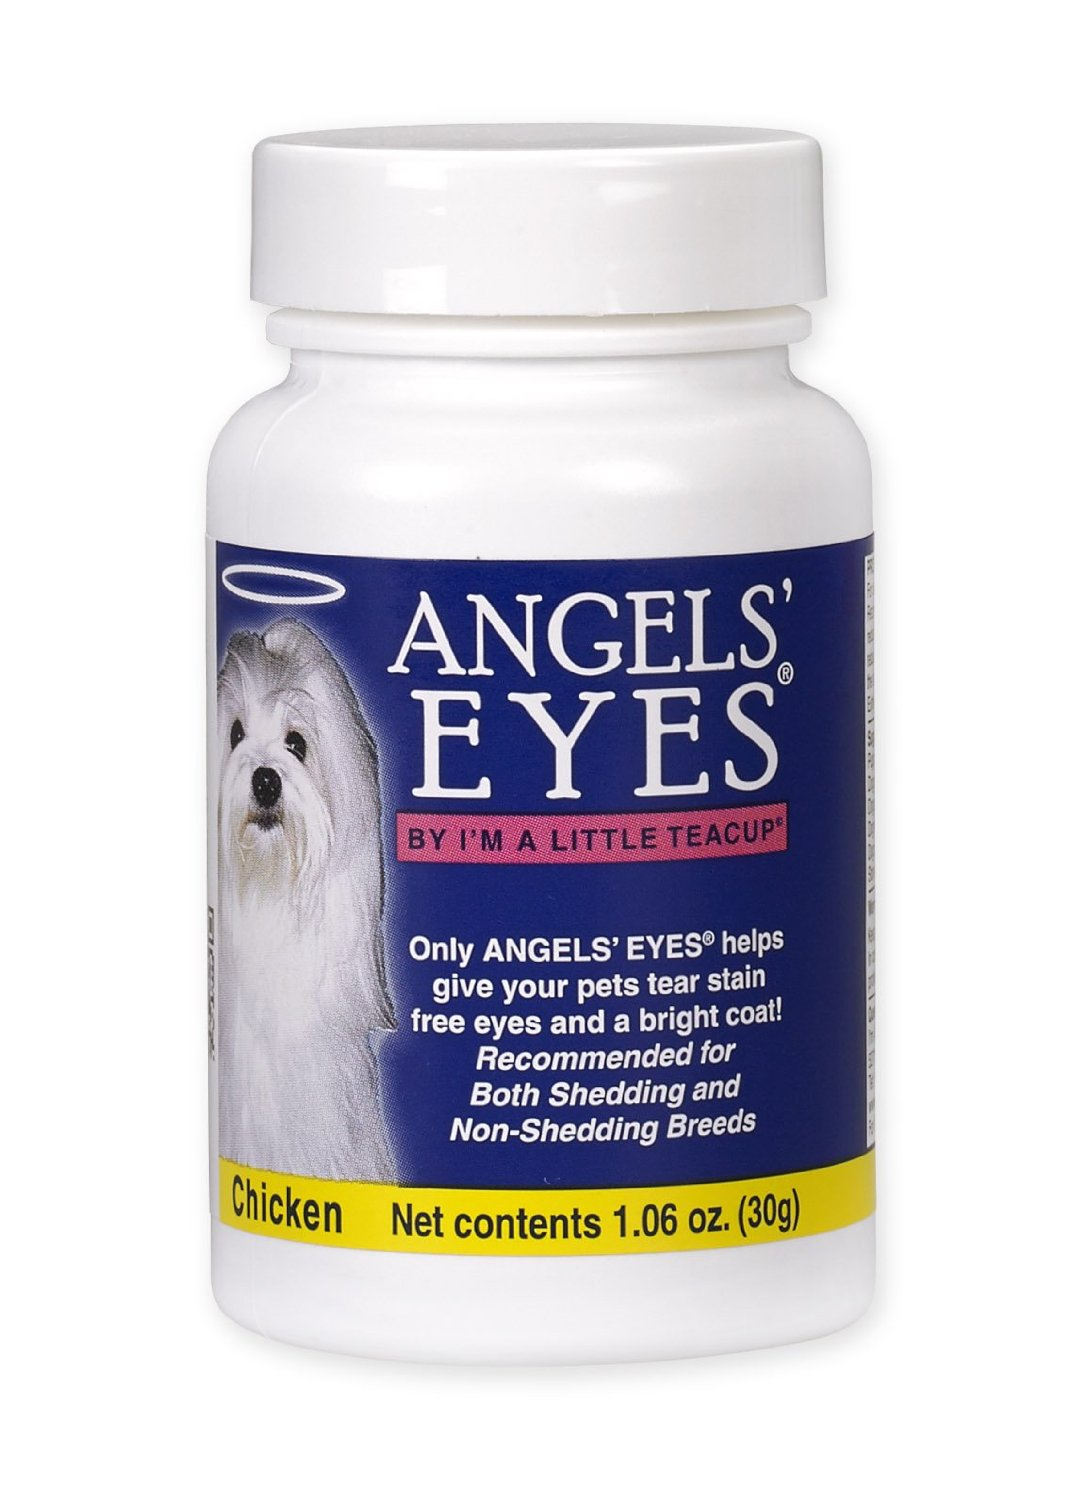 View All Dog Eye Care